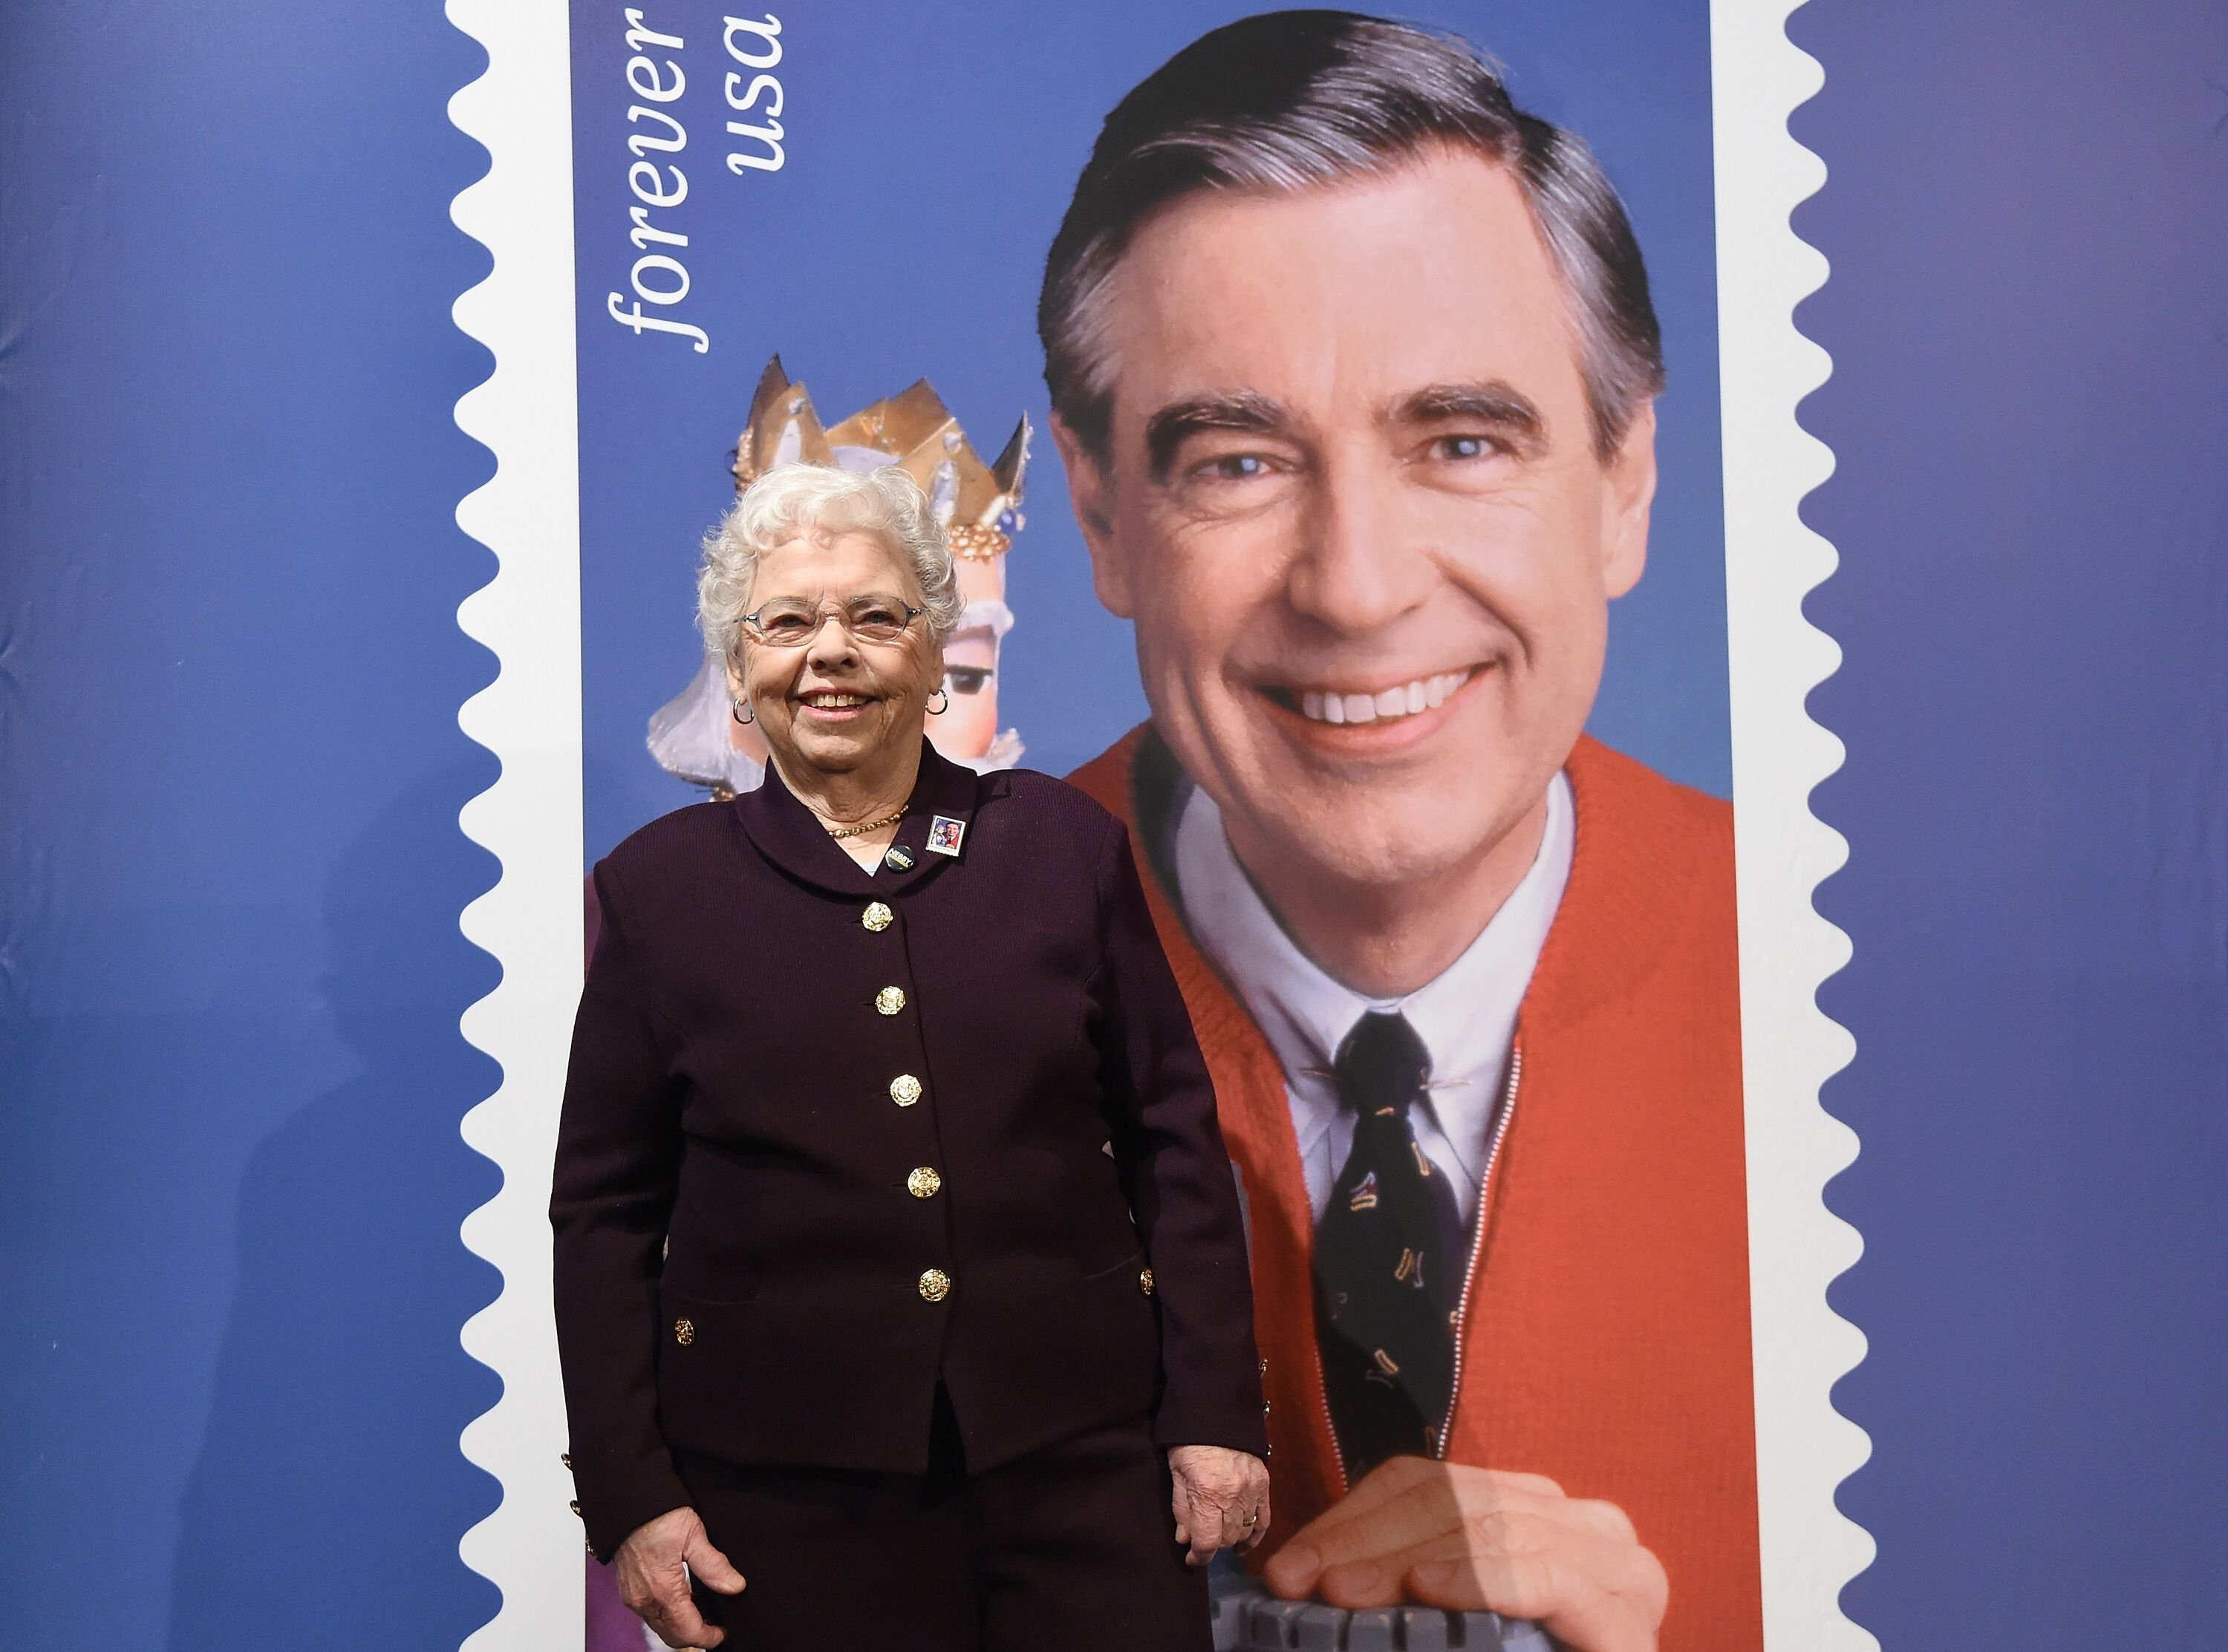 Joanne Rogers attends the U.S. Postal Service Dedication of the Mister Rogers Forever Stamp. | Source: Getty Images